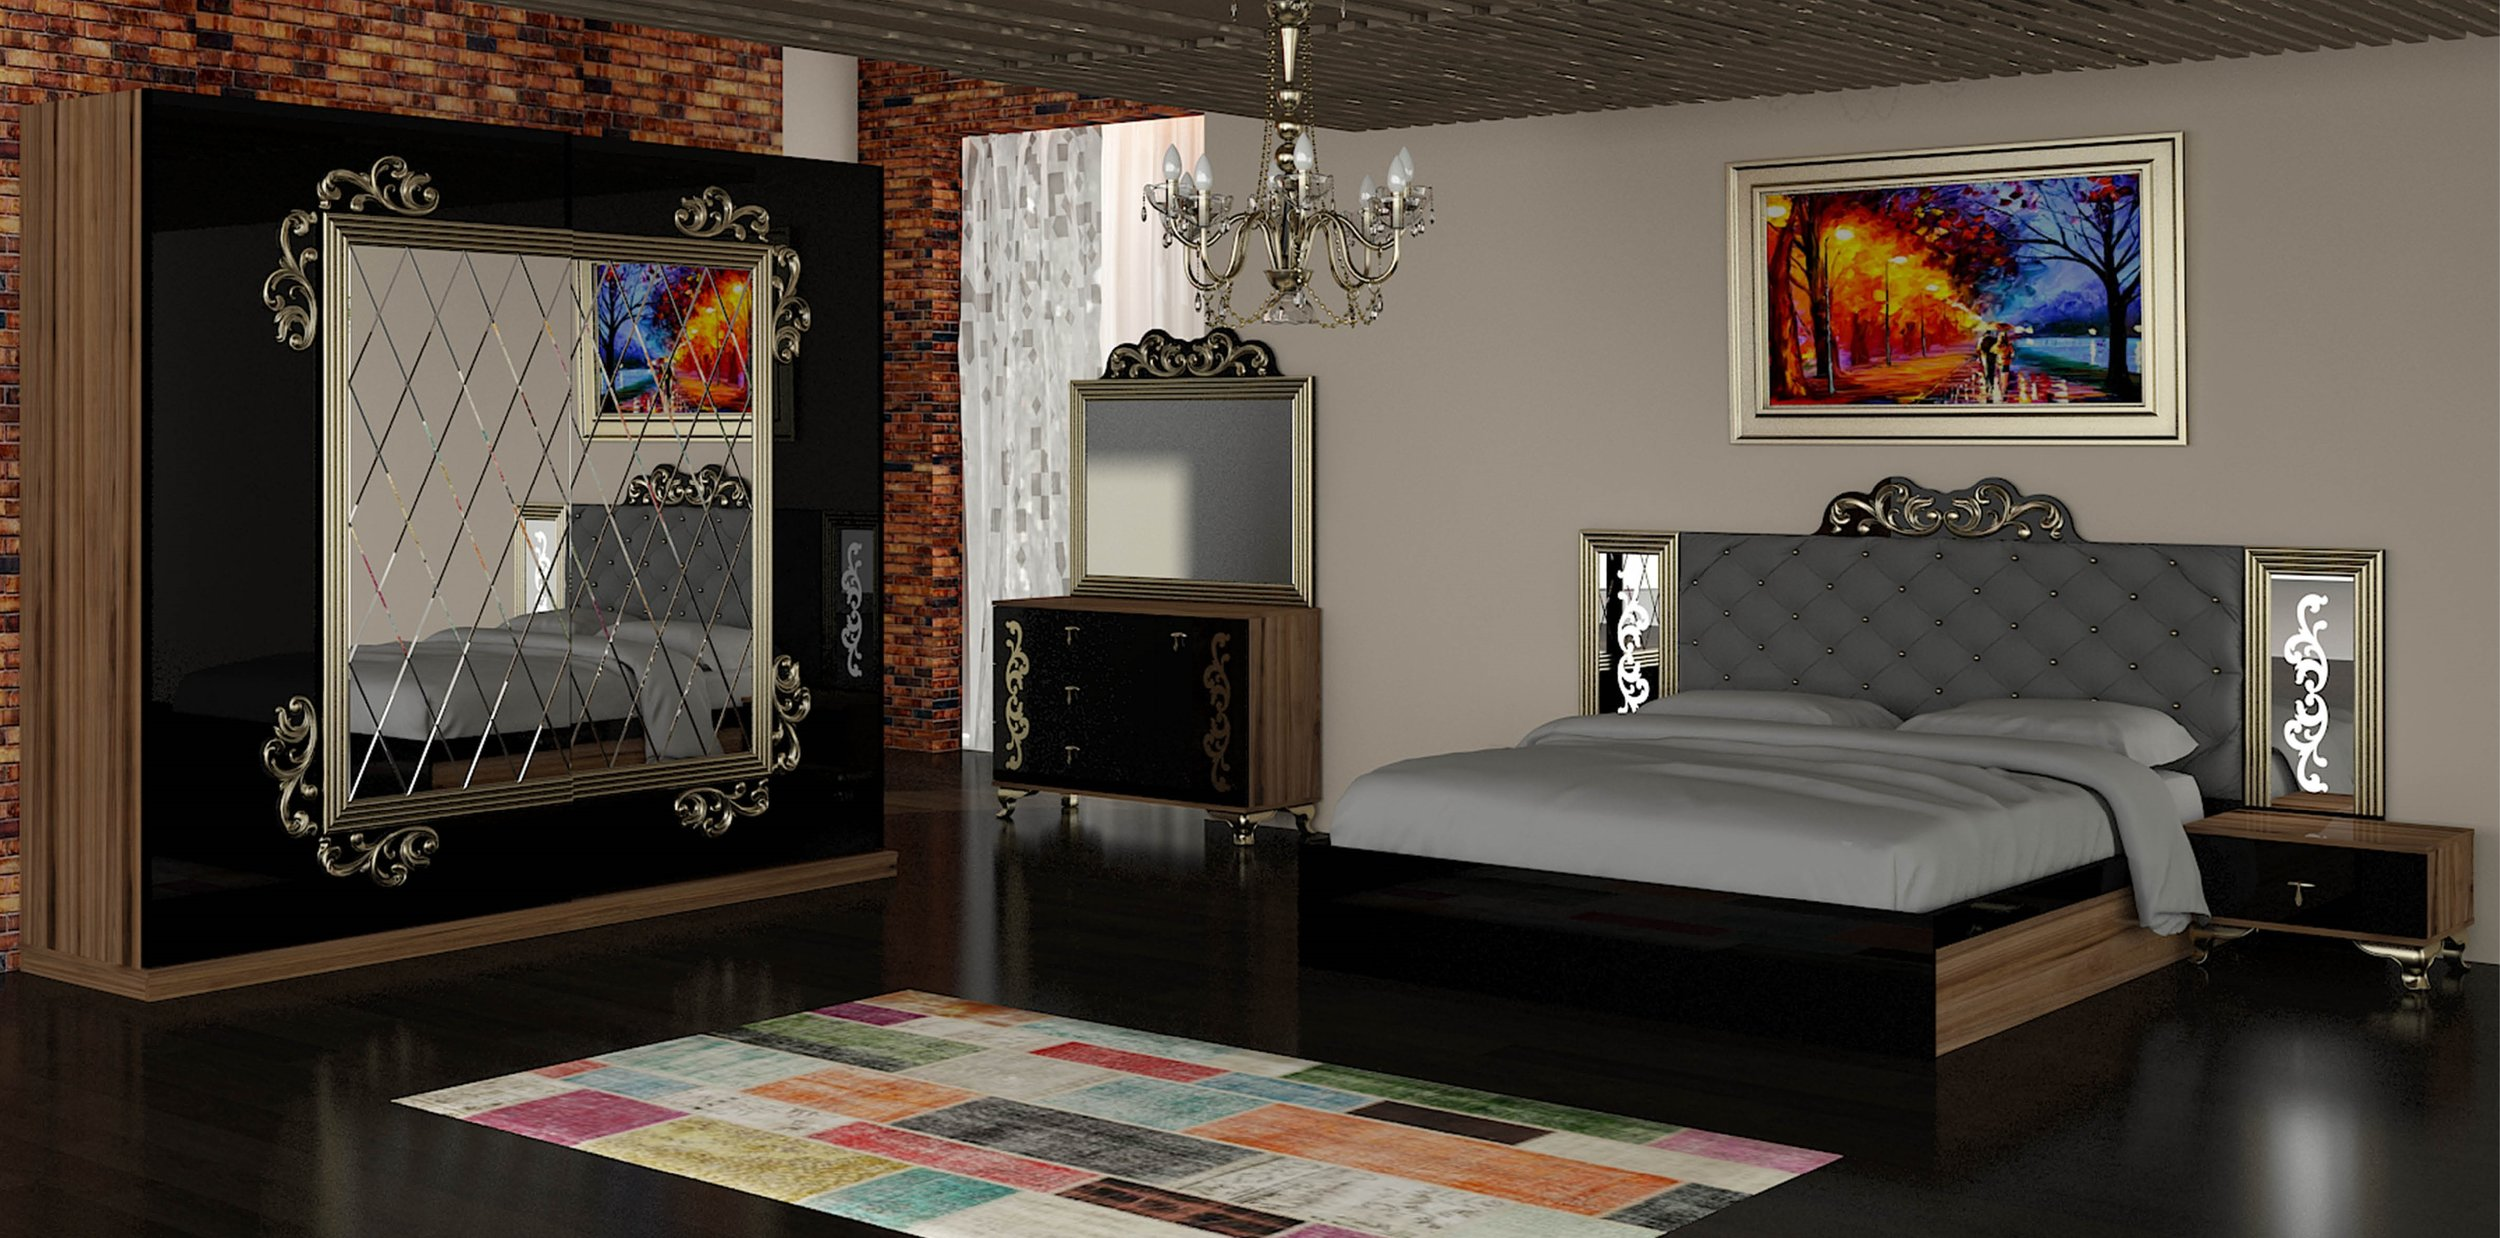 Baca Exclusive Furniture and Homeware in Catford South London Club Card 4.jpg